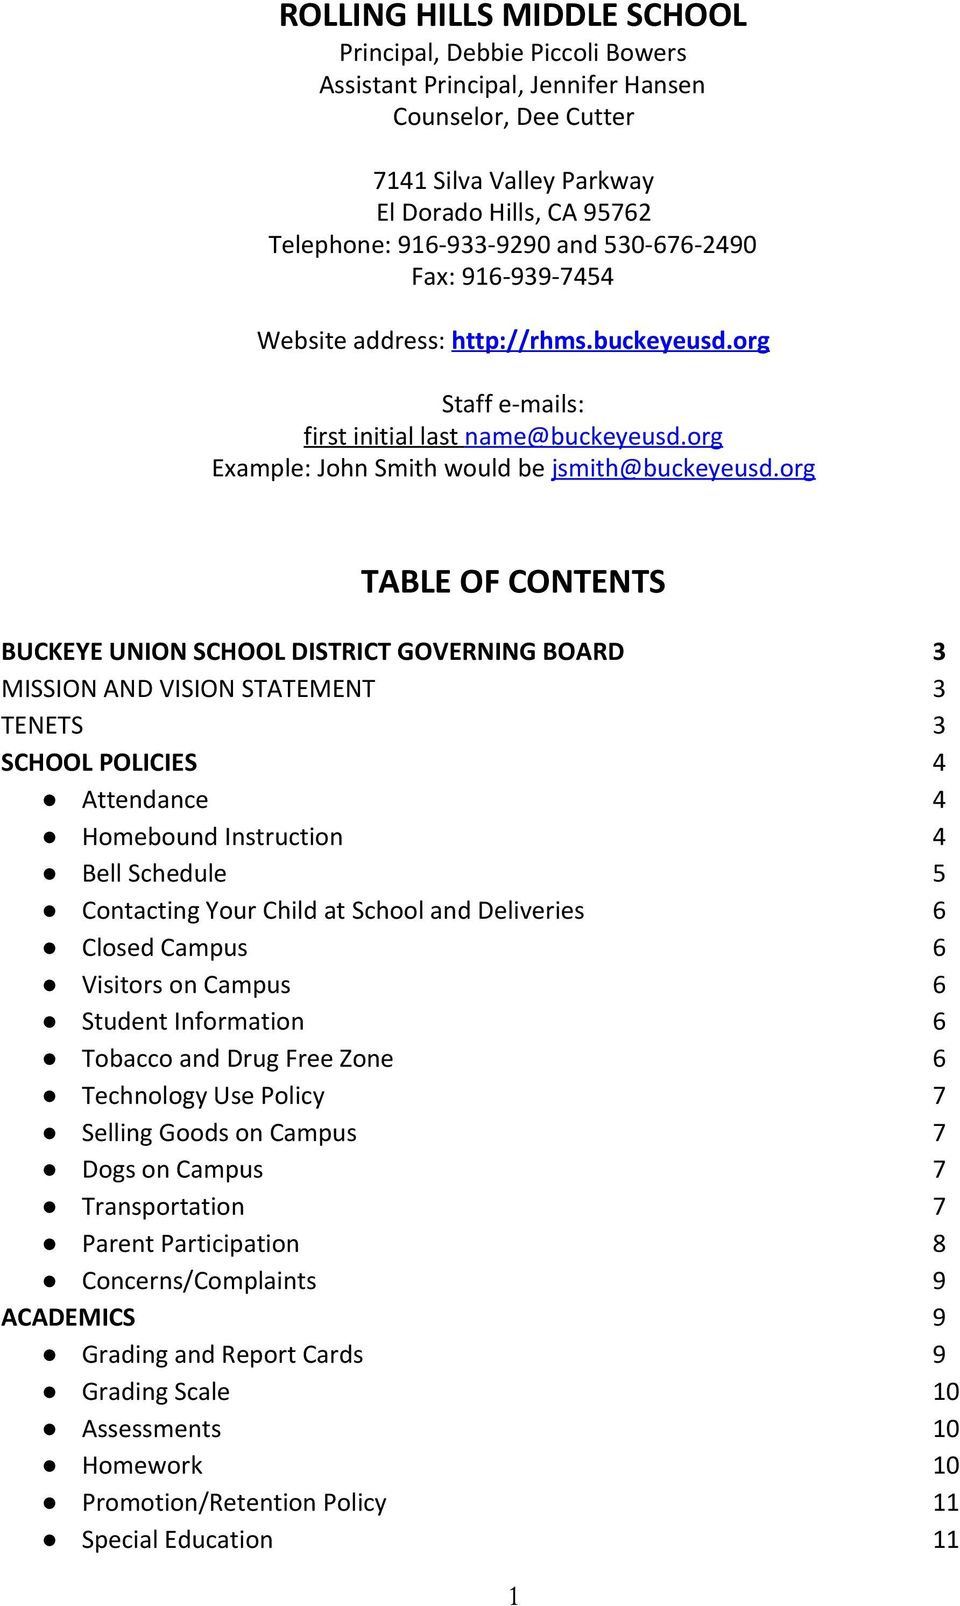 org TABLE OF CONTENTS BUCKEYE UNION SCHOOL DISTRICT GOVERNING BOARD 3 MISSION AND VISION STATEMENT 3 TENETS 3 SCHOOL POLICIES 4 Attendance 4 Homebound Instruction 4 Bell Schedule 5 Contacting Your